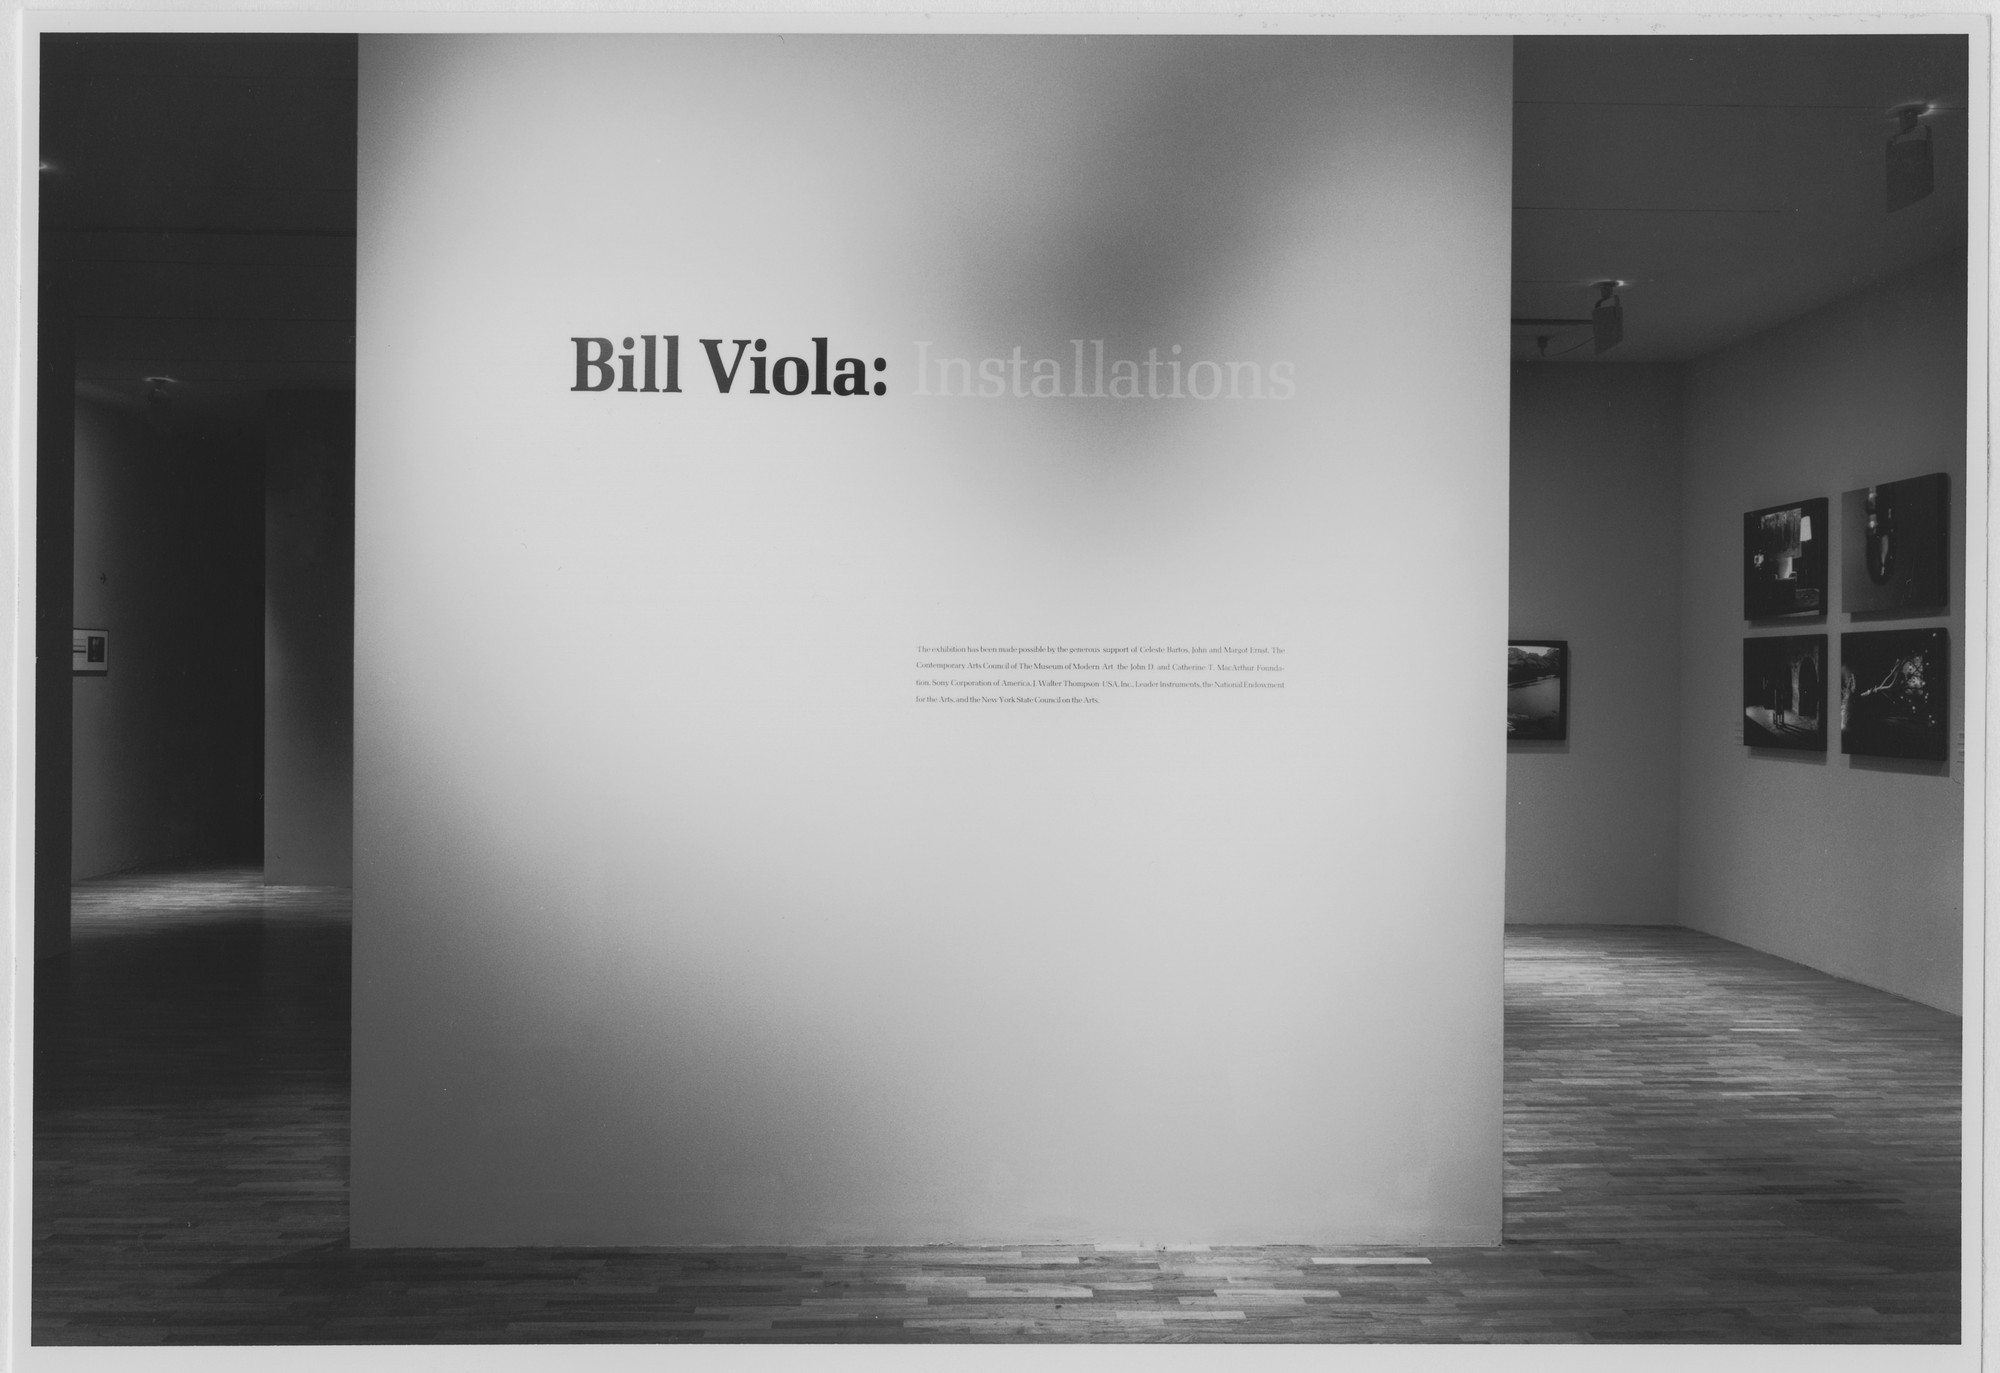 "Installation view of the exhibition, ""Bill Viola"" October 17, 1987–January 3, 1988. Photographic Archive. The Museum of Modern Art Archives, New York. IN1465.1. Photograph by Mali Olatunji."